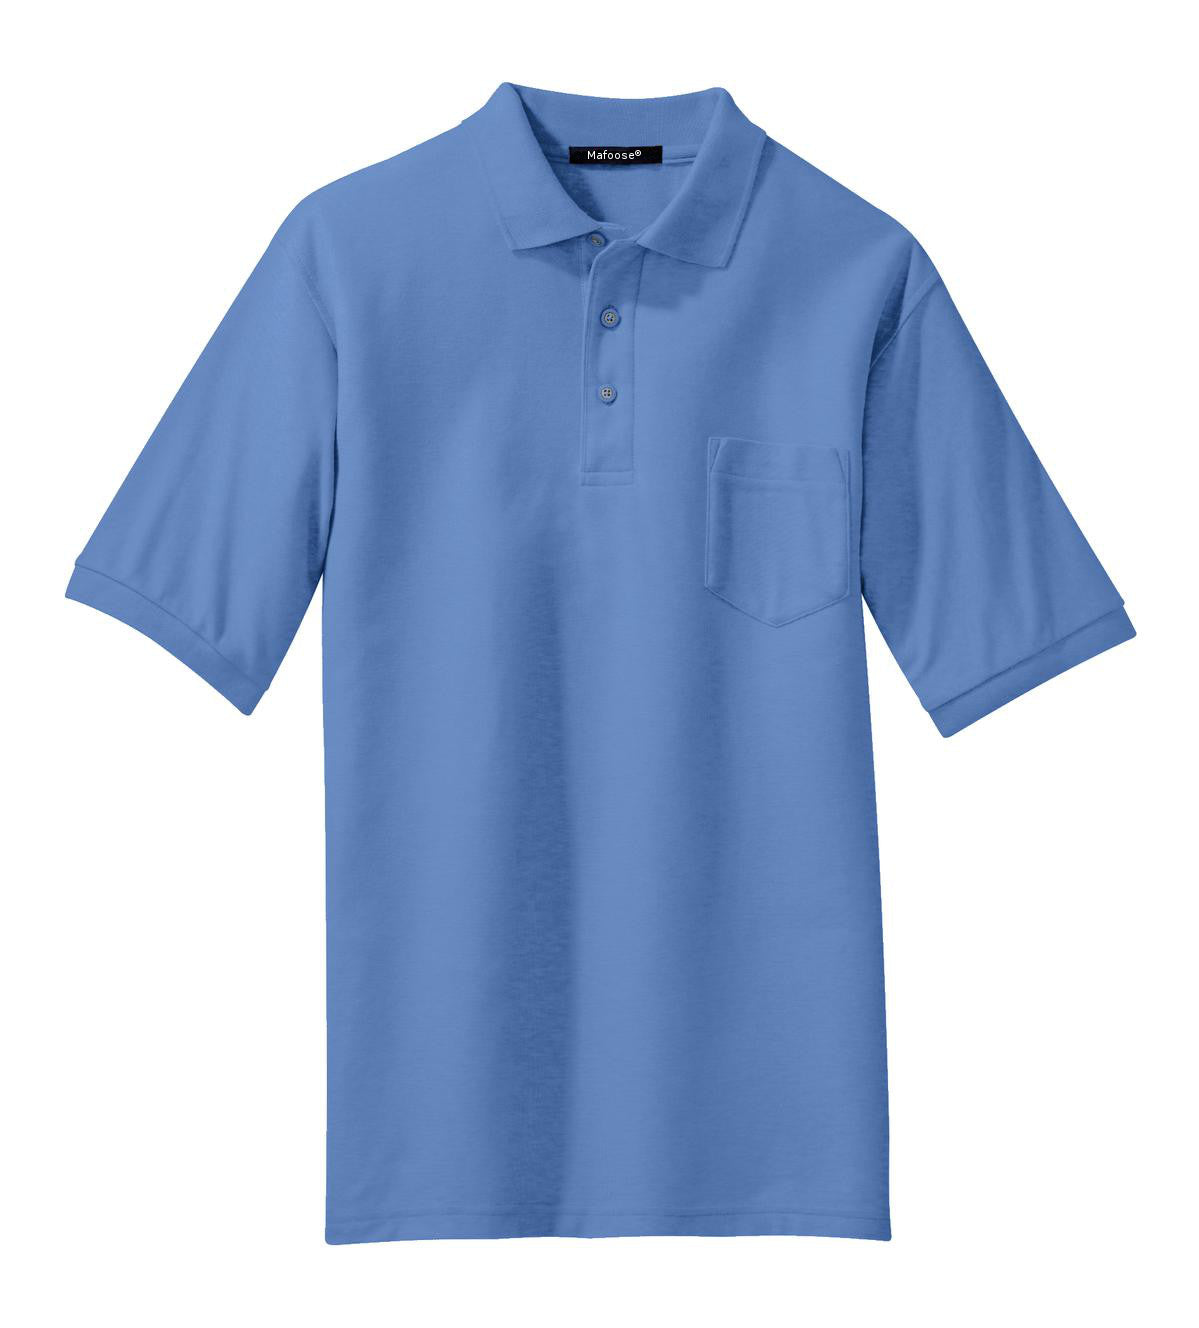 Mafoose Men's Silk Touch Polo with Pocket Ultramarine Blue-Front